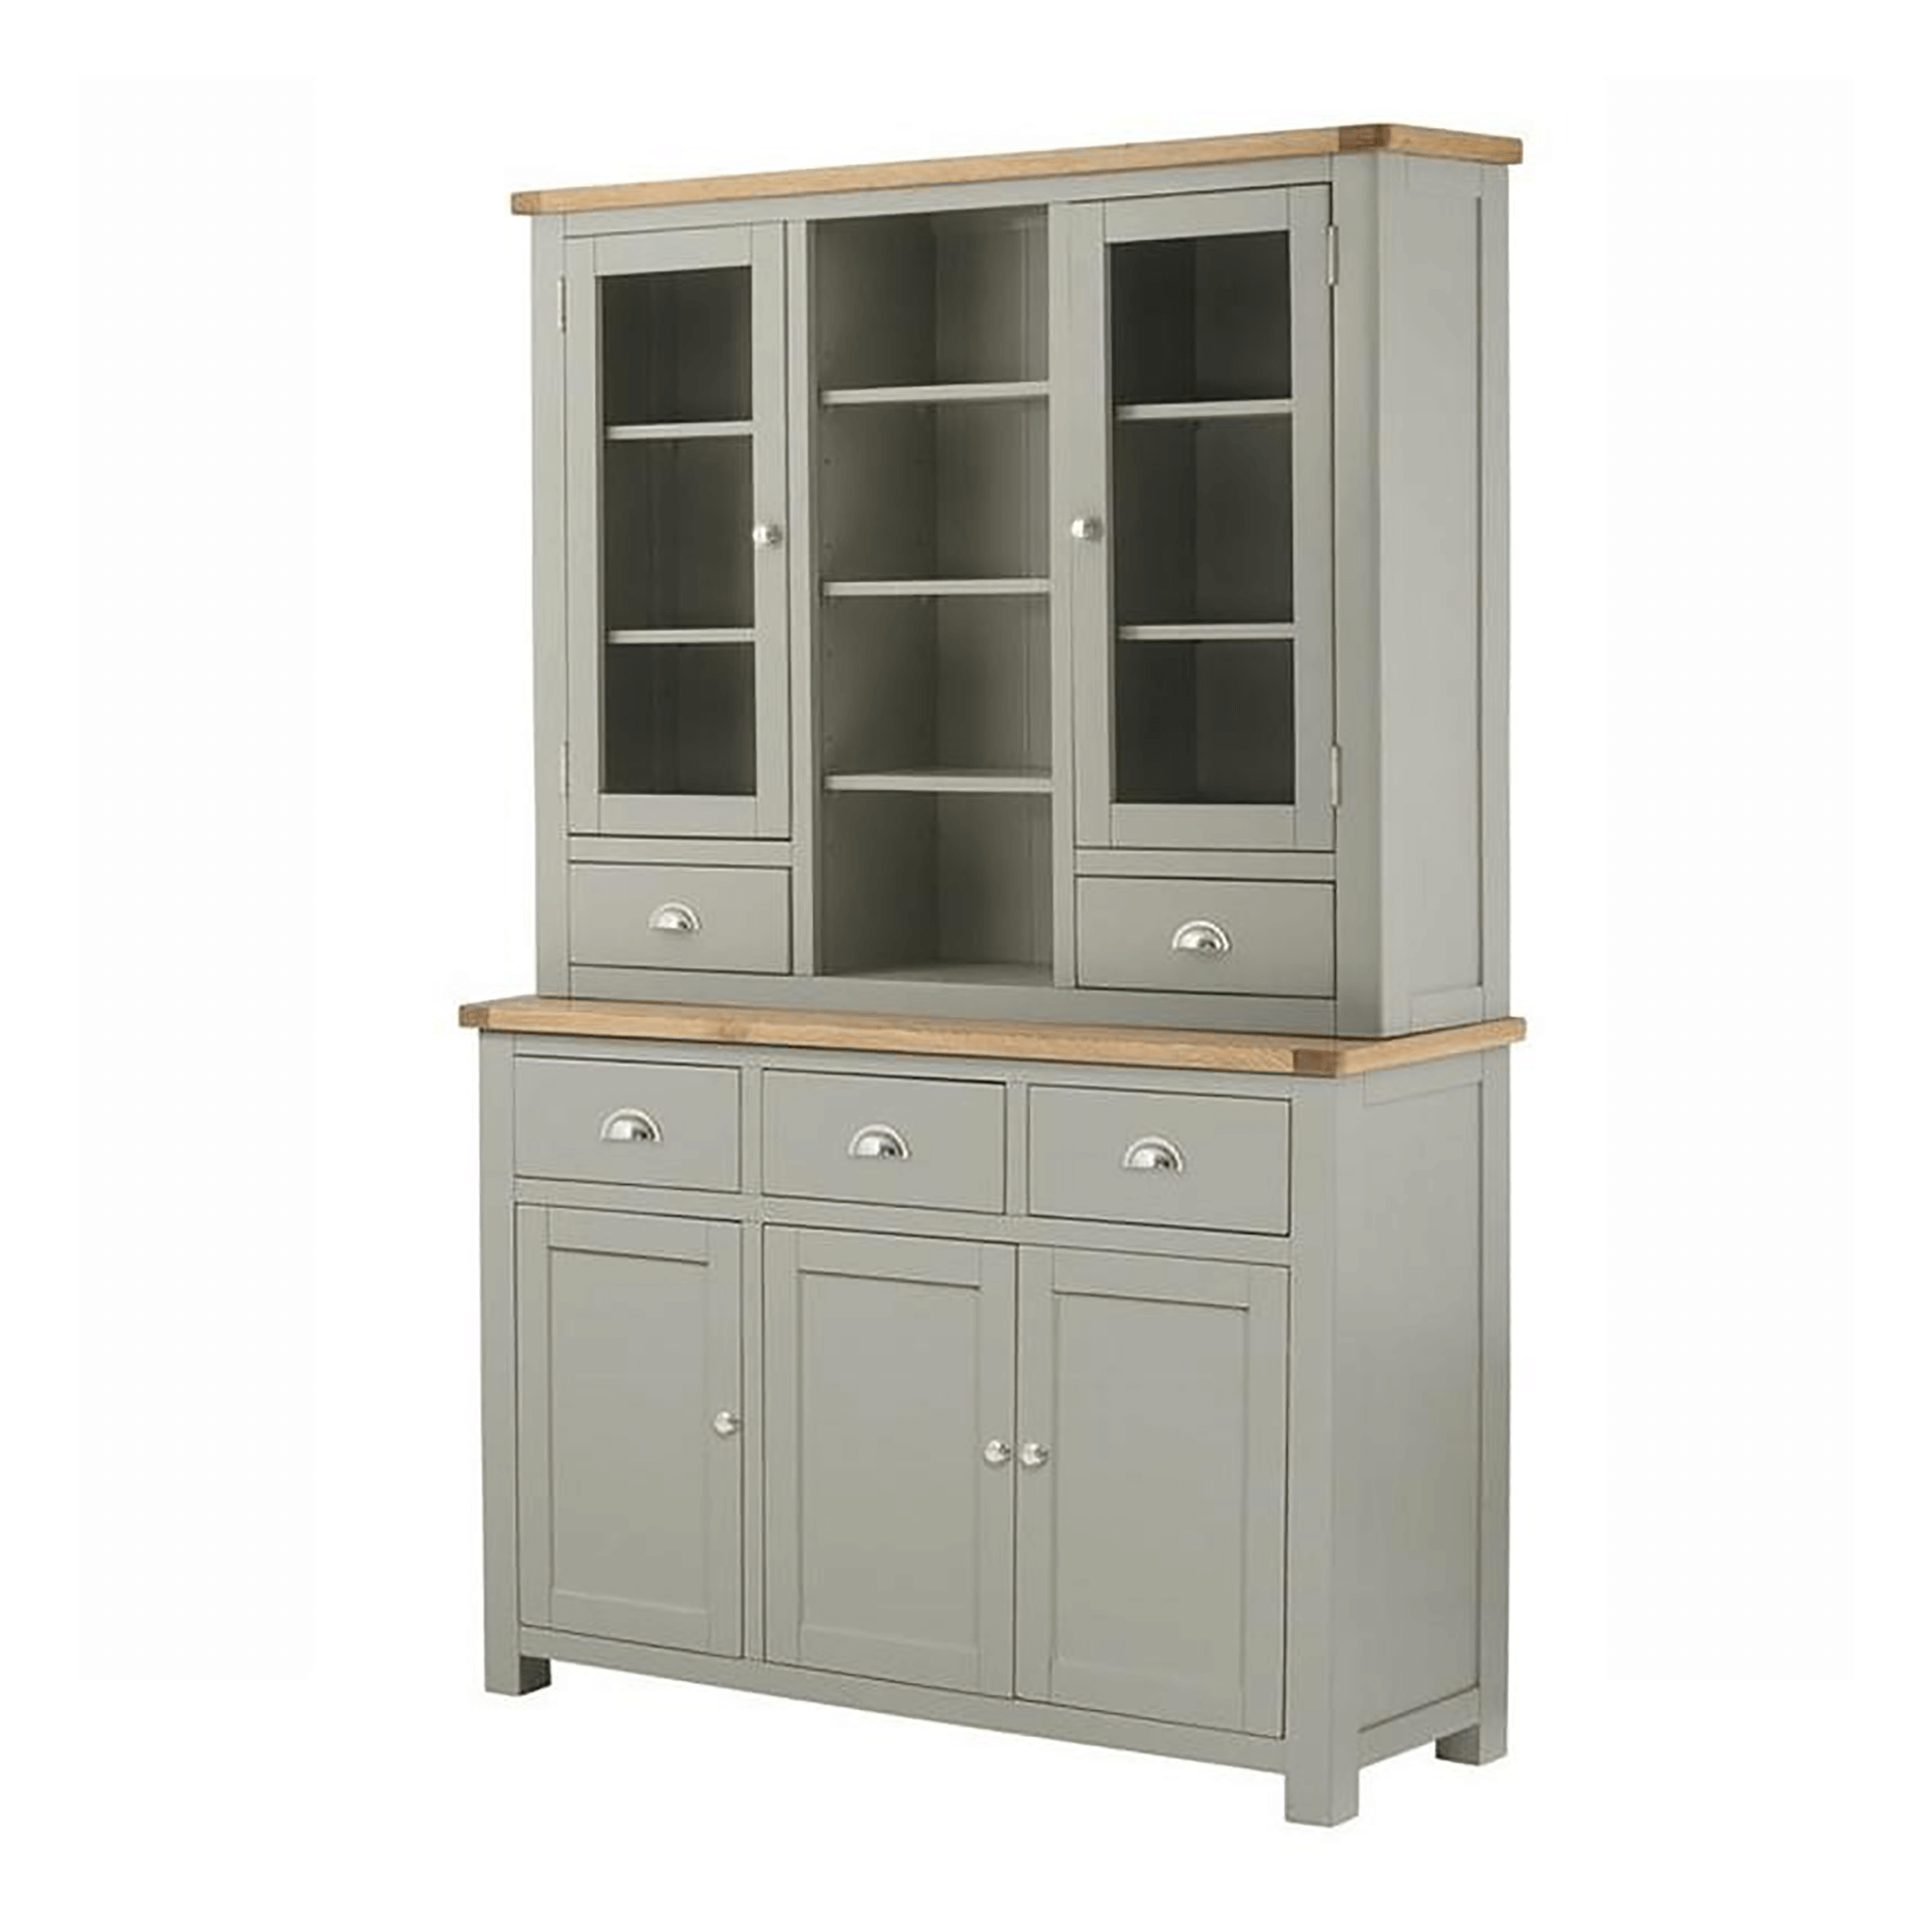 Padstow Knock Resistant Paint Solid Pine Frame Dresser Roseland Furniture